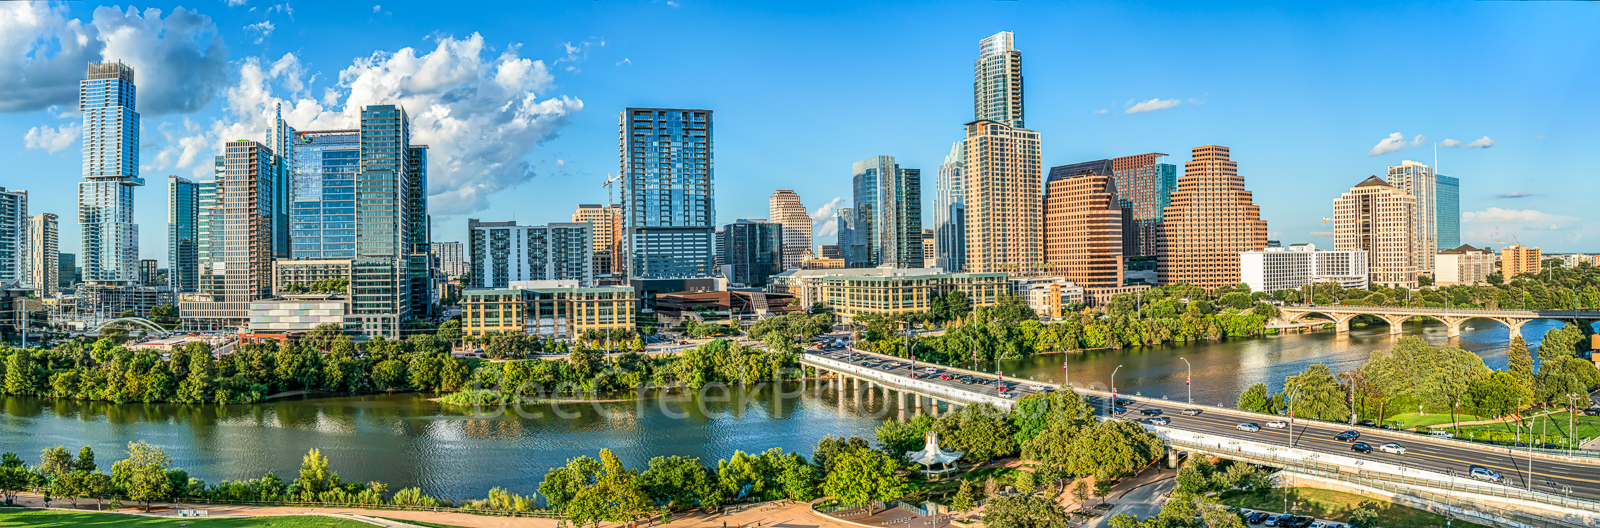 Aerial Austin Skyline, Austin, skyline, austin skylie pictures, aerial, lady bird lake, hike and bike trail, cityscape, water, pano, panorama, tallest building, Independent, Jingle, Google, Northshore, photo